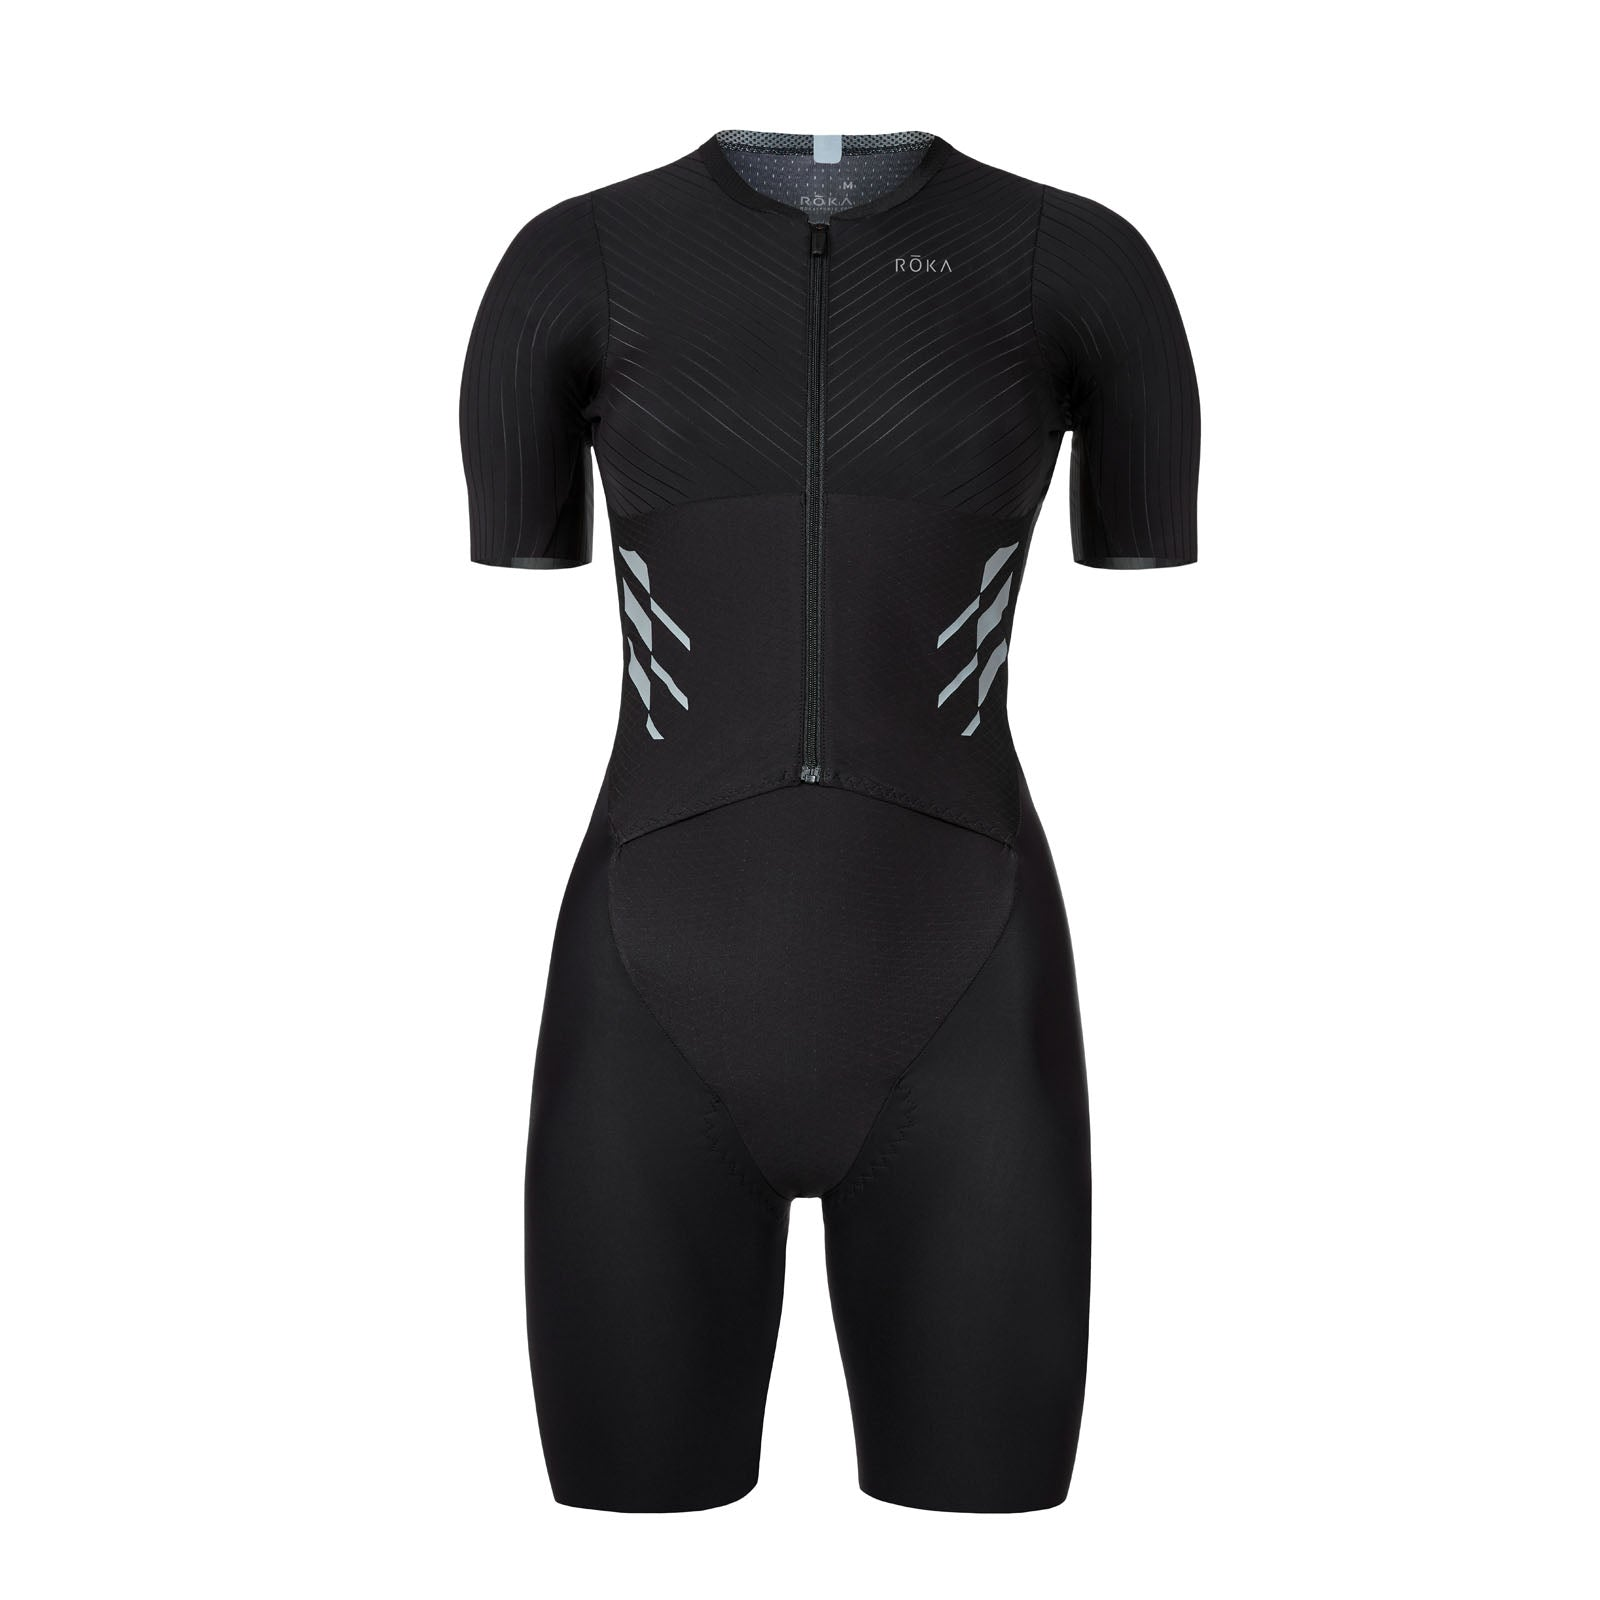 Women's Gen II Elite Aero Short Sleeve Tri Suit - Front View - Fastest Women's Tri Suit